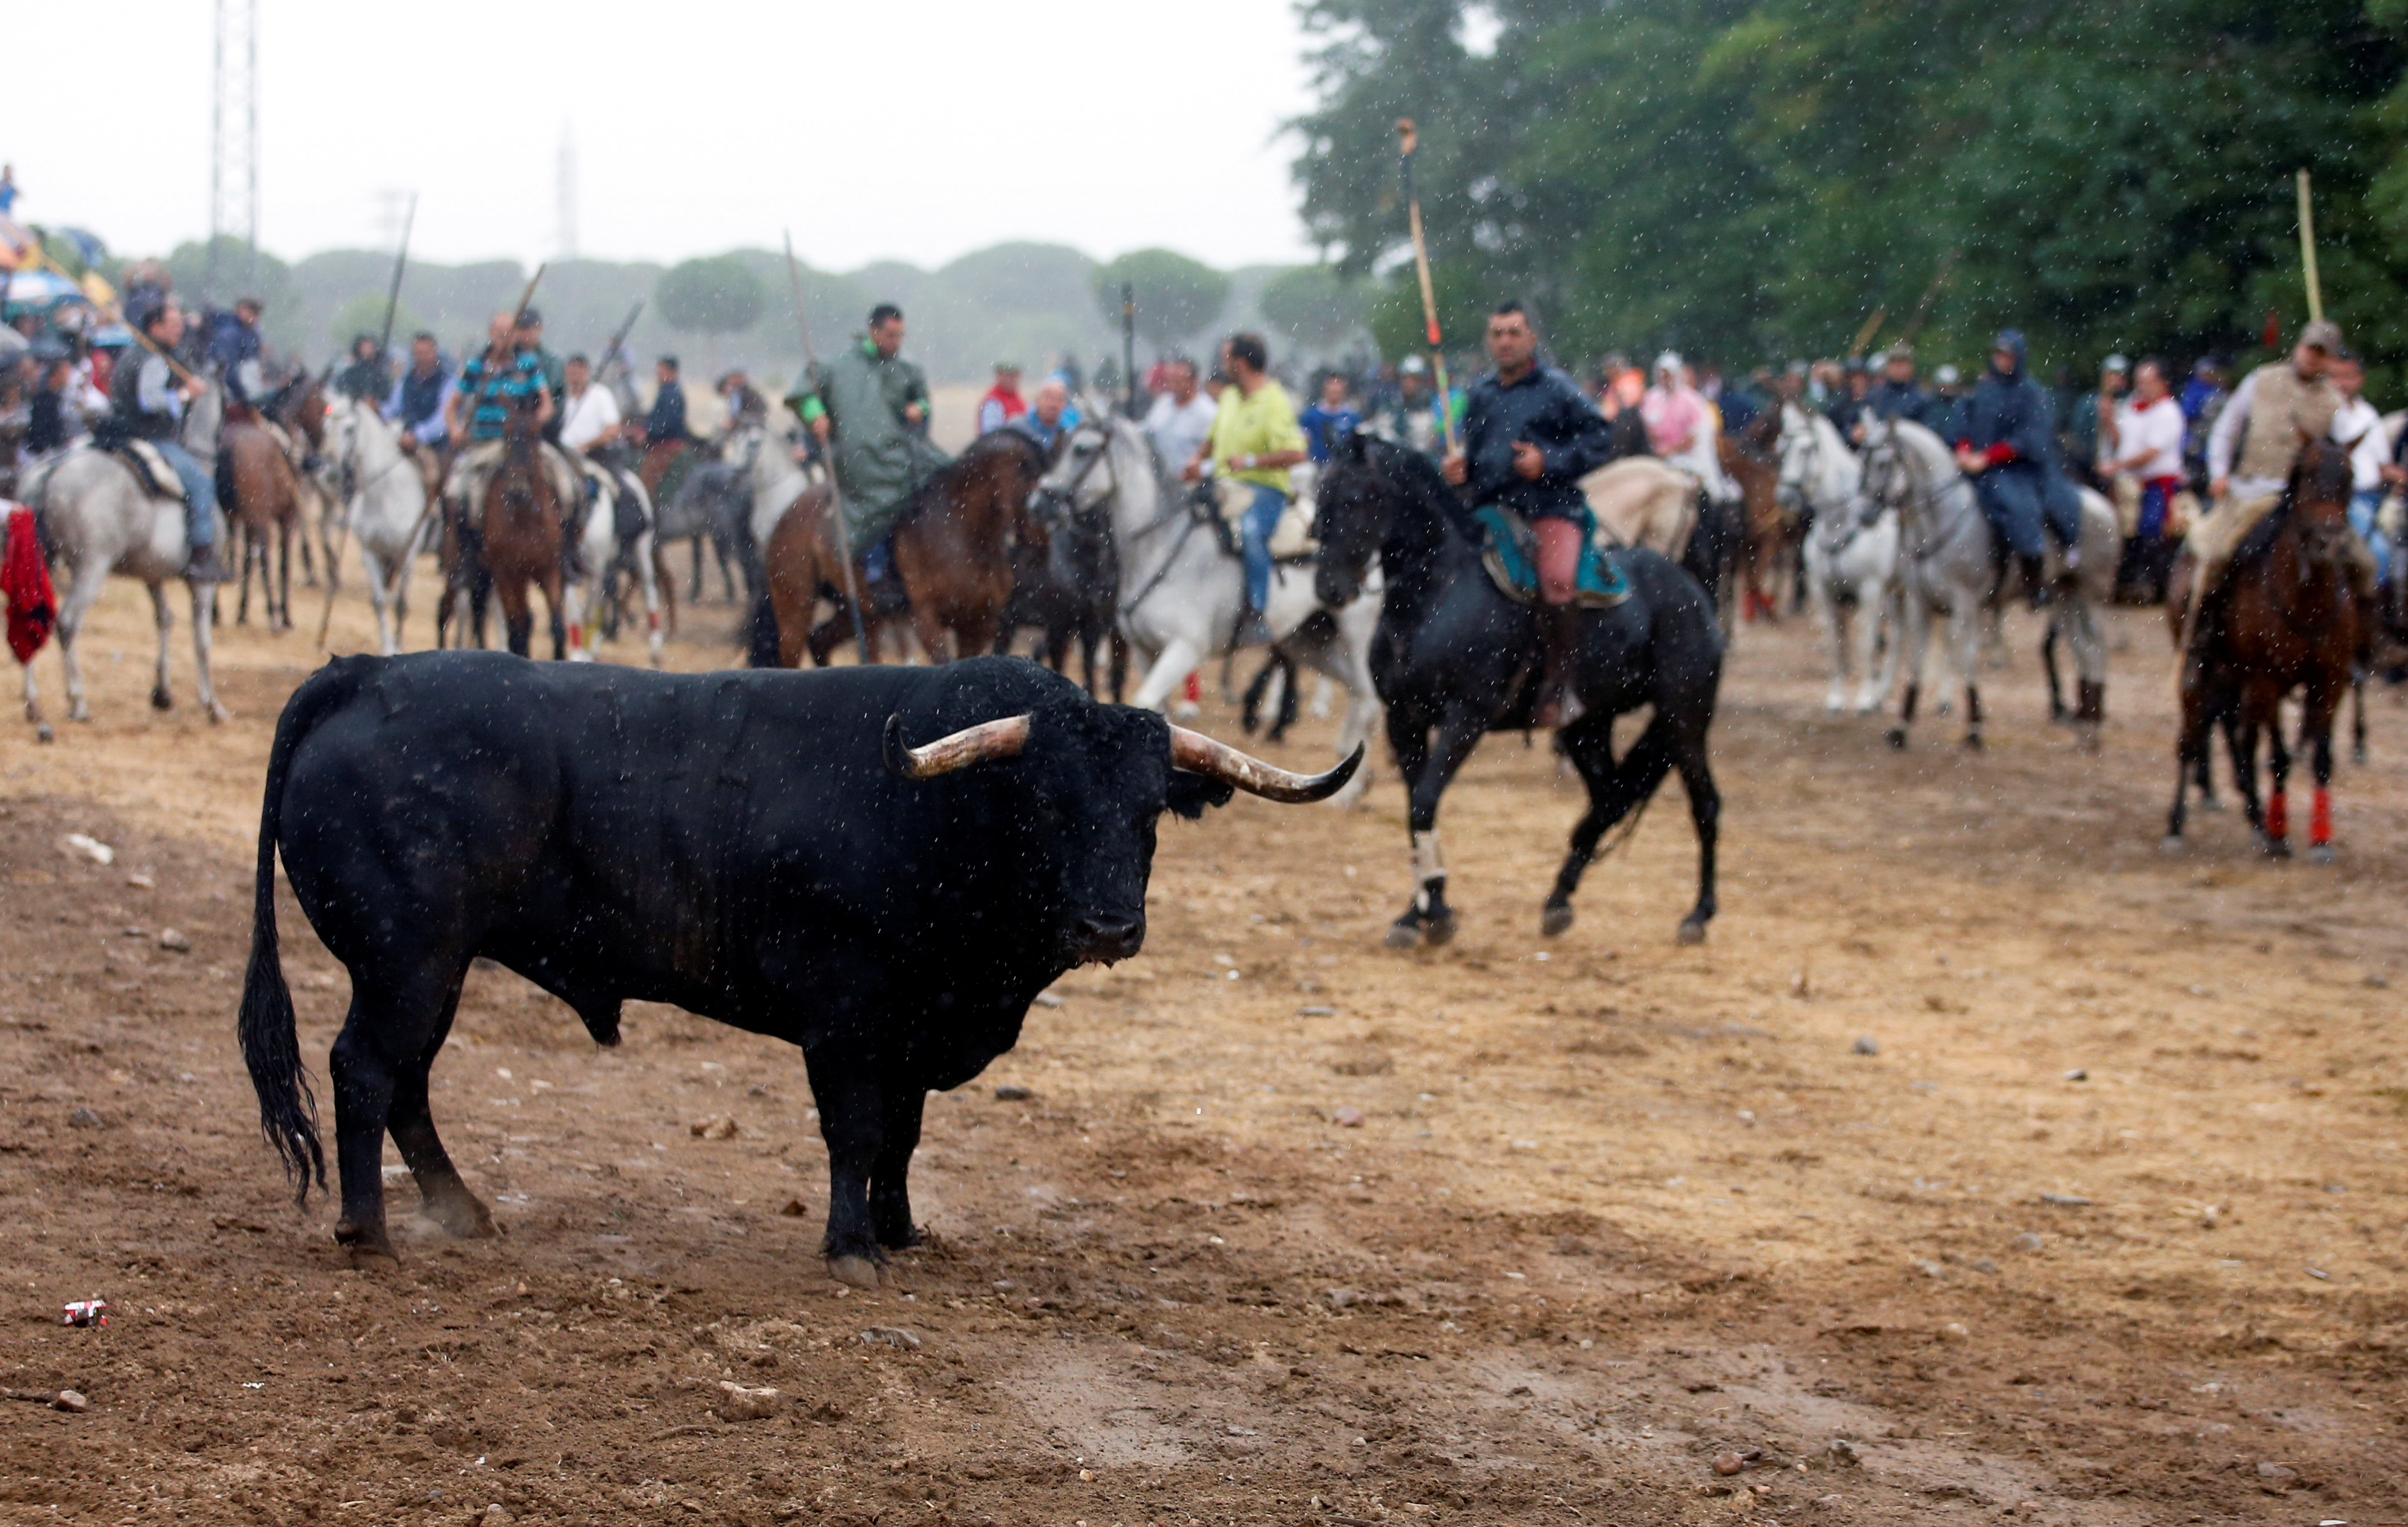 Clashes As Spanish Town Bans Bull Lancing At Annual Festival Time